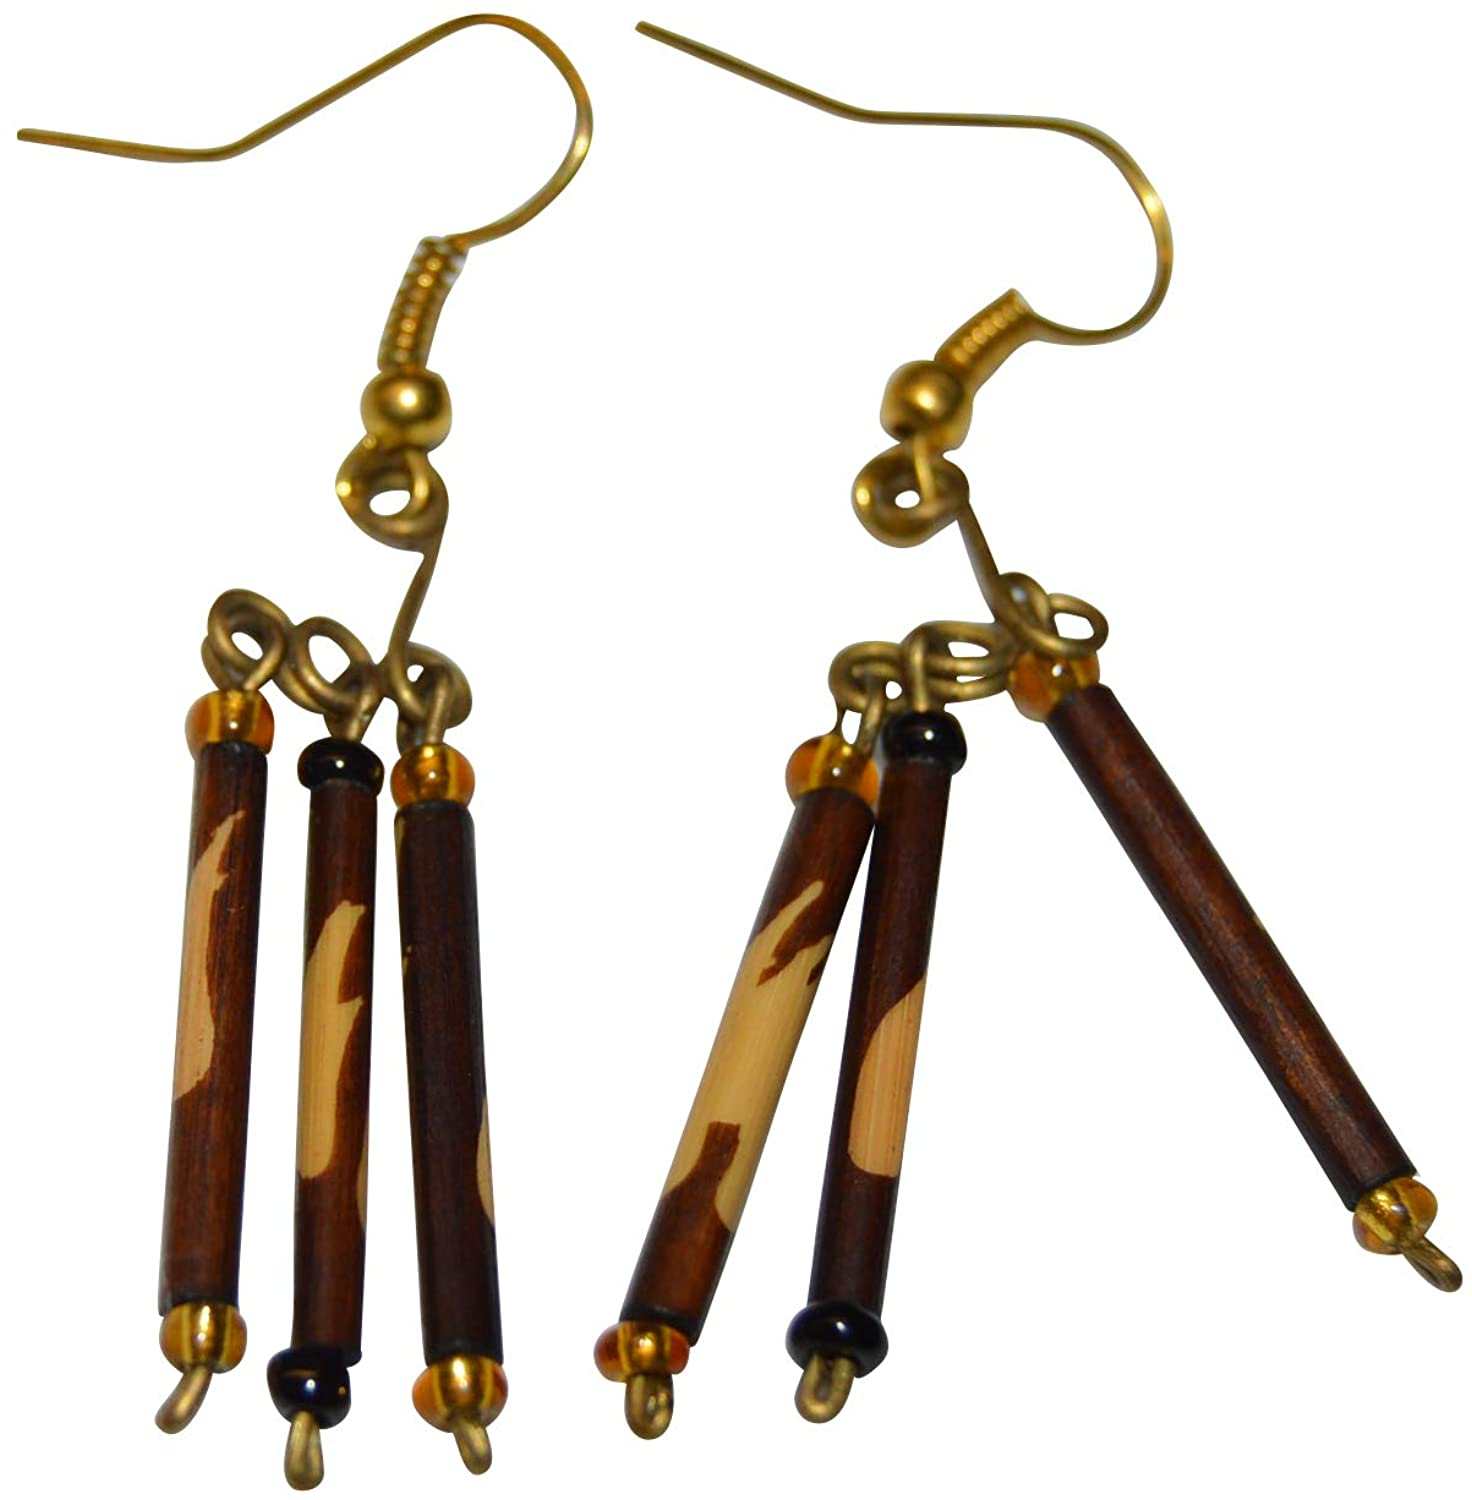 Beautiful African Women Earrings made with material| Handcrafted Geometric Shaped Drop Earrings | Stylish Wooden Dangle Fish Hook Earrings |Fit for all occasions | in Brown Color